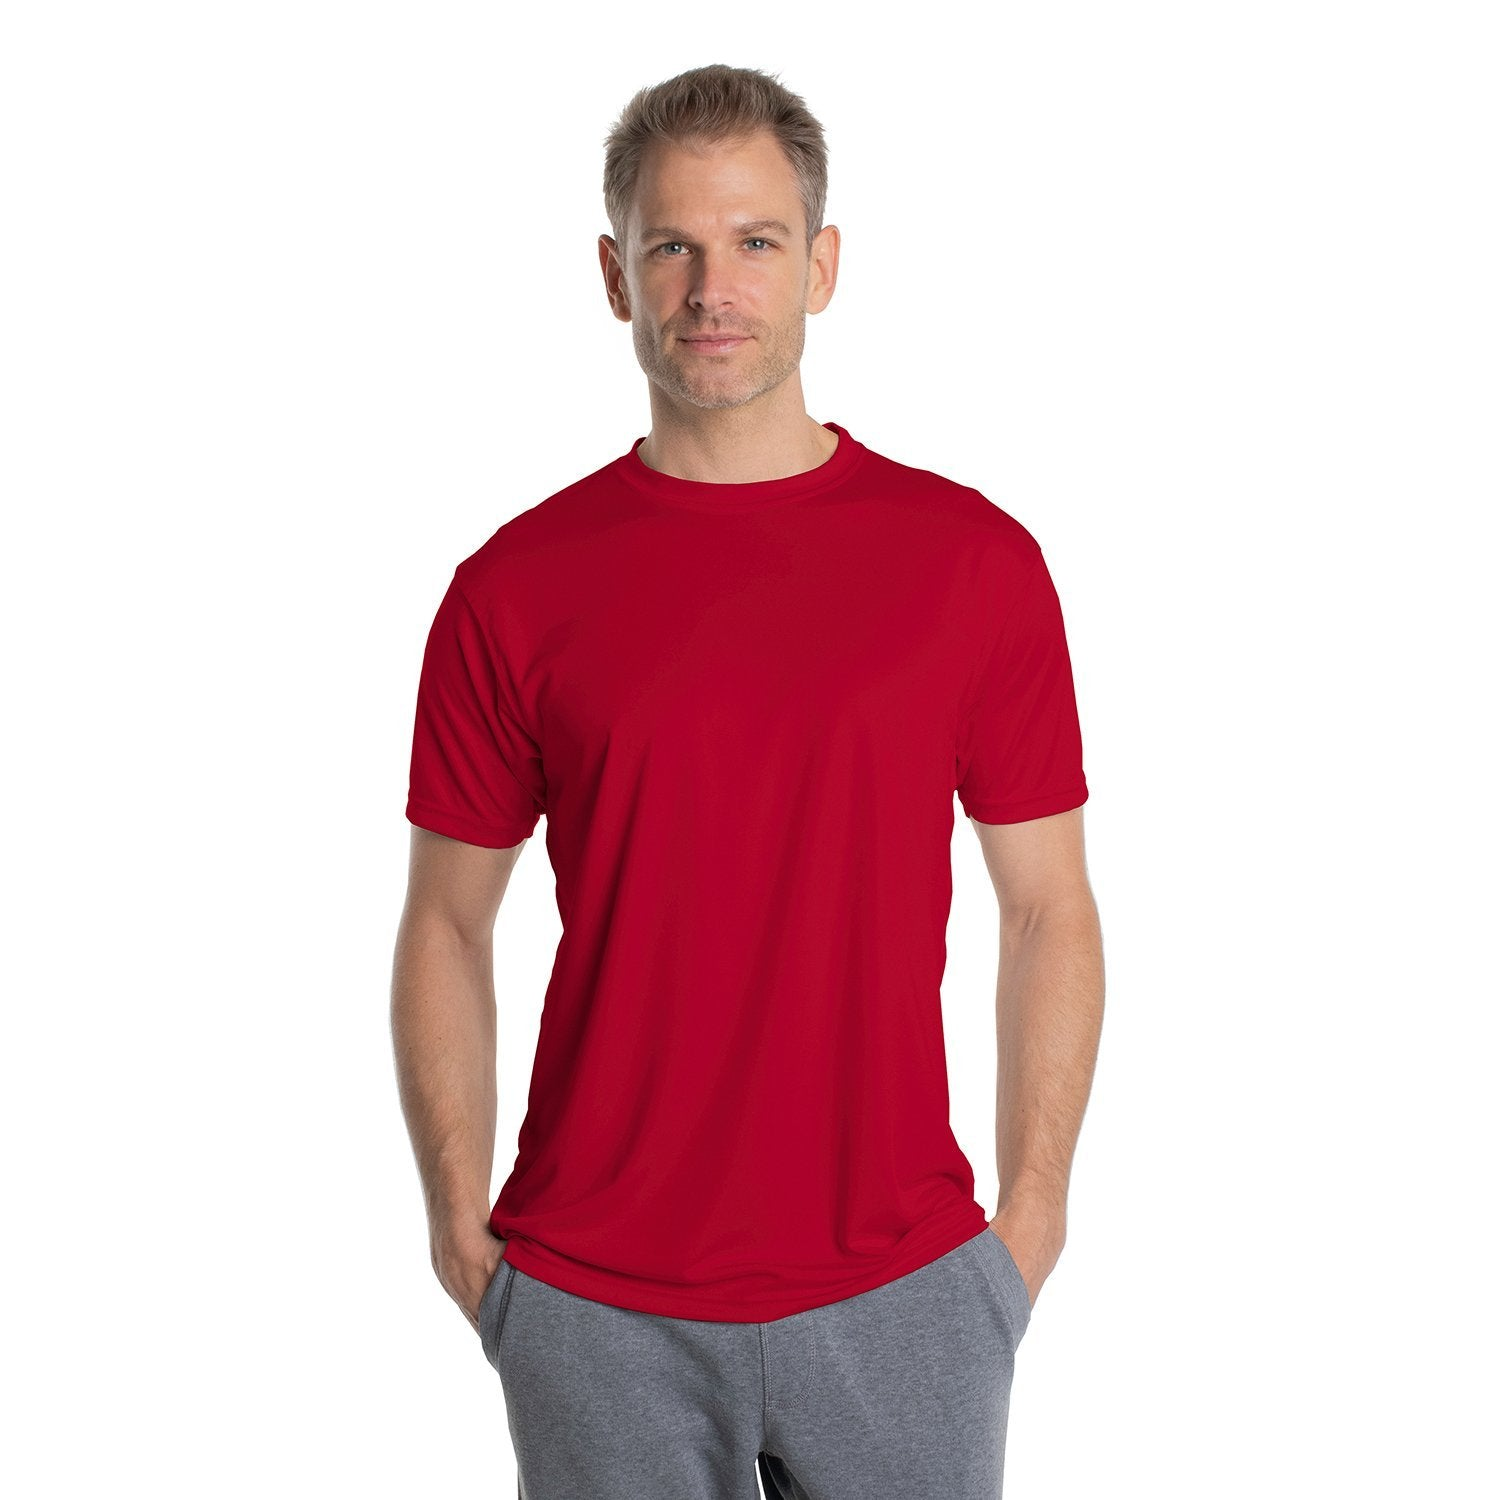 M100MR Solar Short Sleeve - Mars Red